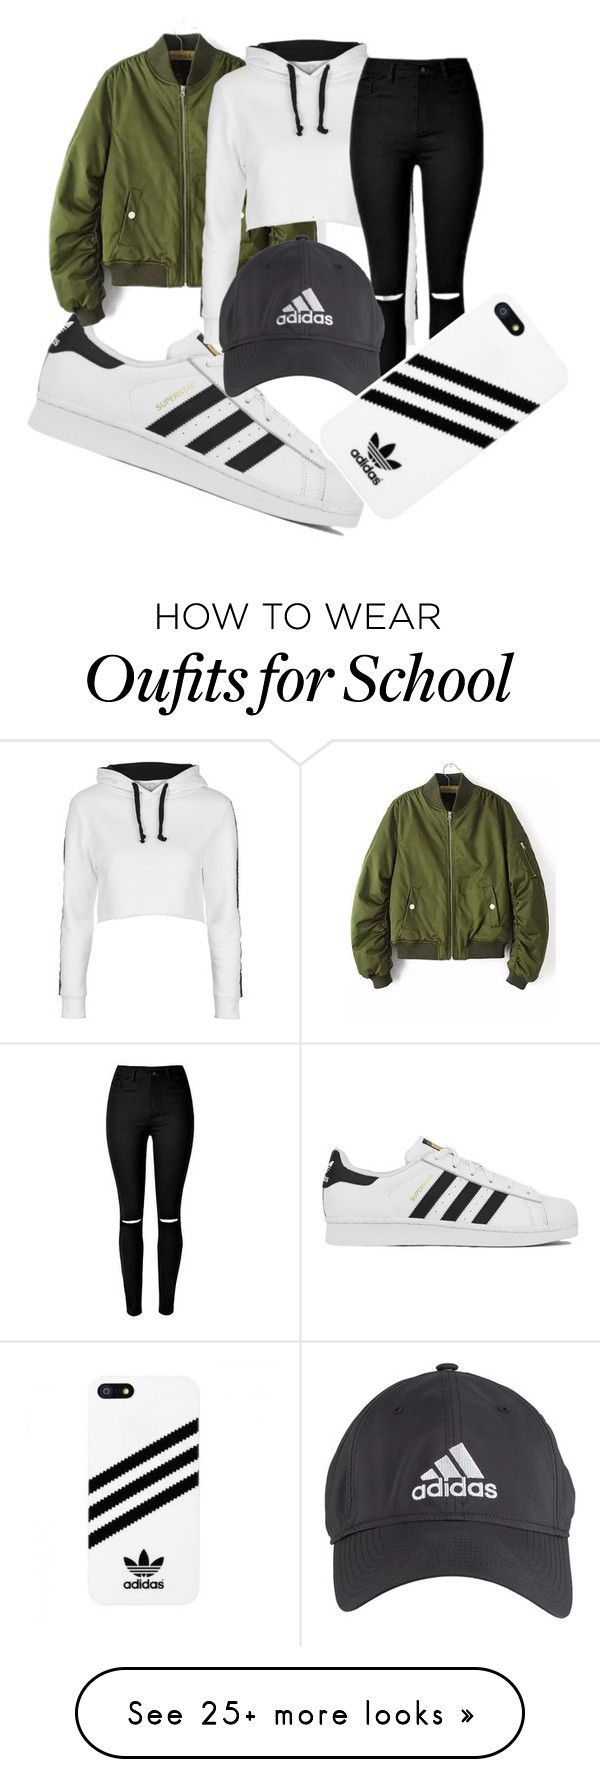 """school trip"" by damarisvasco on Polyvore featuring adidas, Topshop and ADDIDAS"